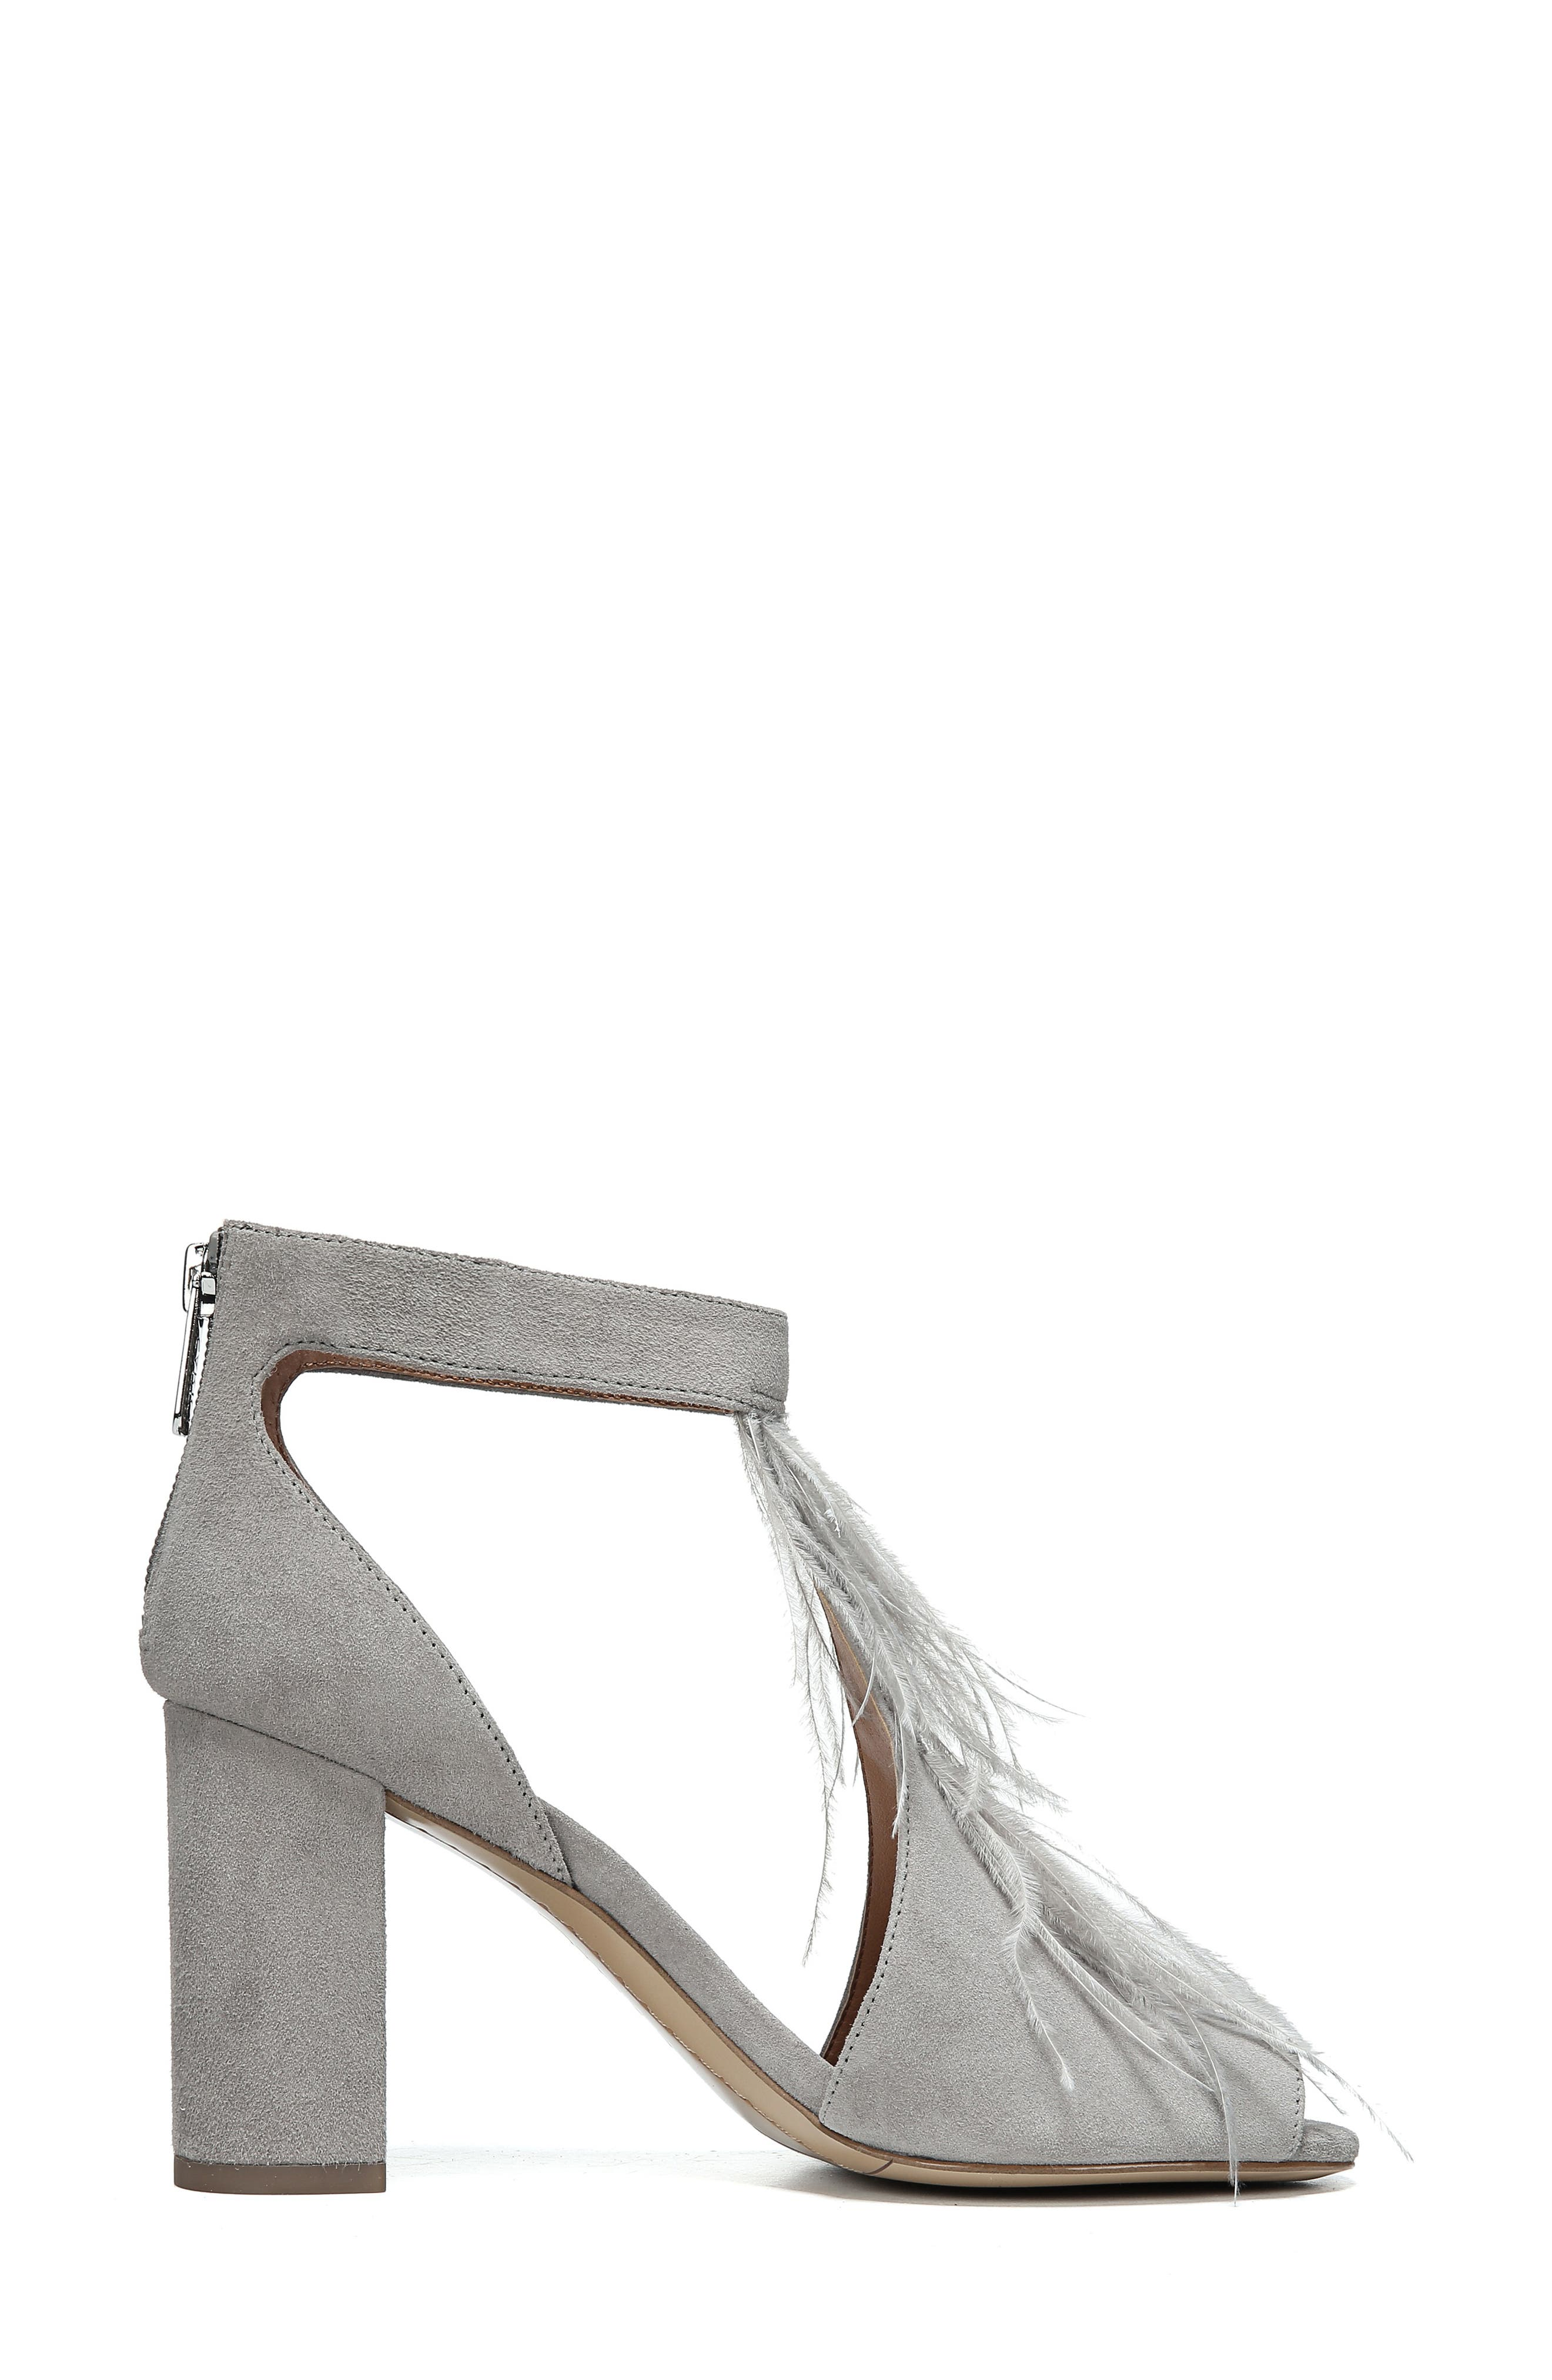 SARTO BY FRANCO SARTO, Olivette Sandal, Alternate thumbnail 3, color, GREYSTONE LEATHER